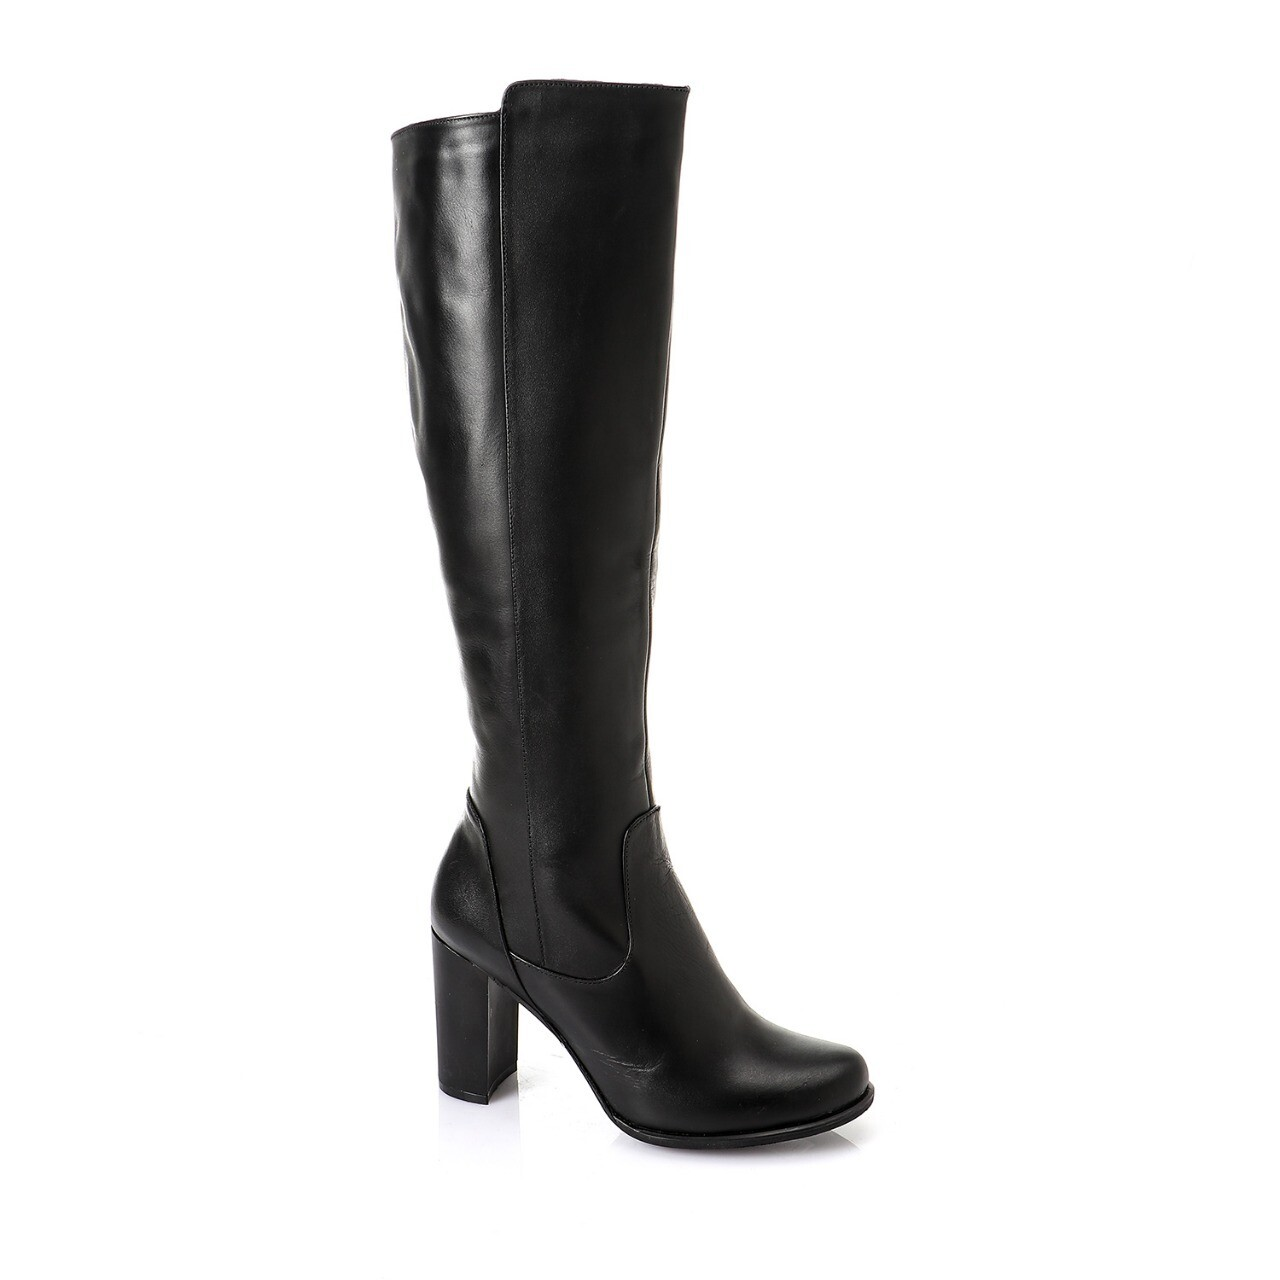 3744 Knee High Boot - Black